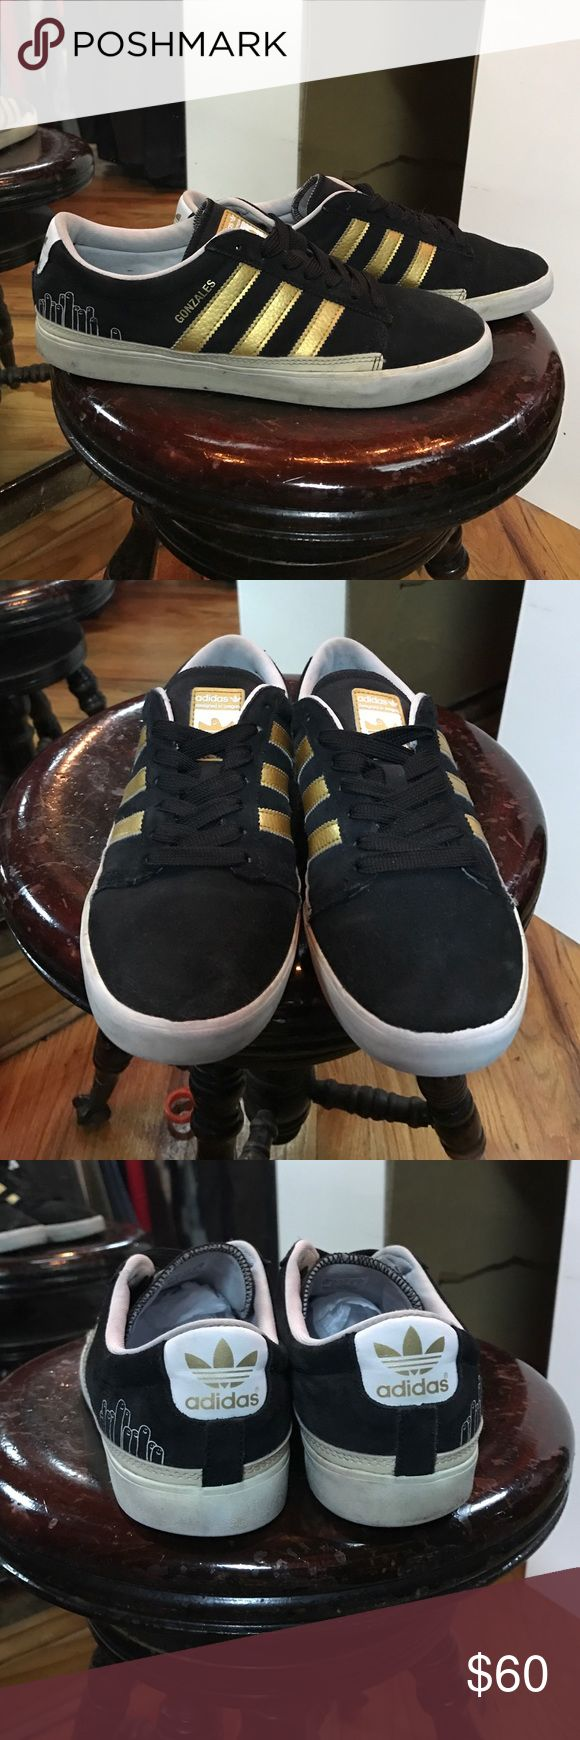 Adidas + Gonz RARE sneakers Adidas + Gonz RARE sneakers. Black suede with gold stripes. Hard to find flawless condition! Adidas Shoes Sneakers